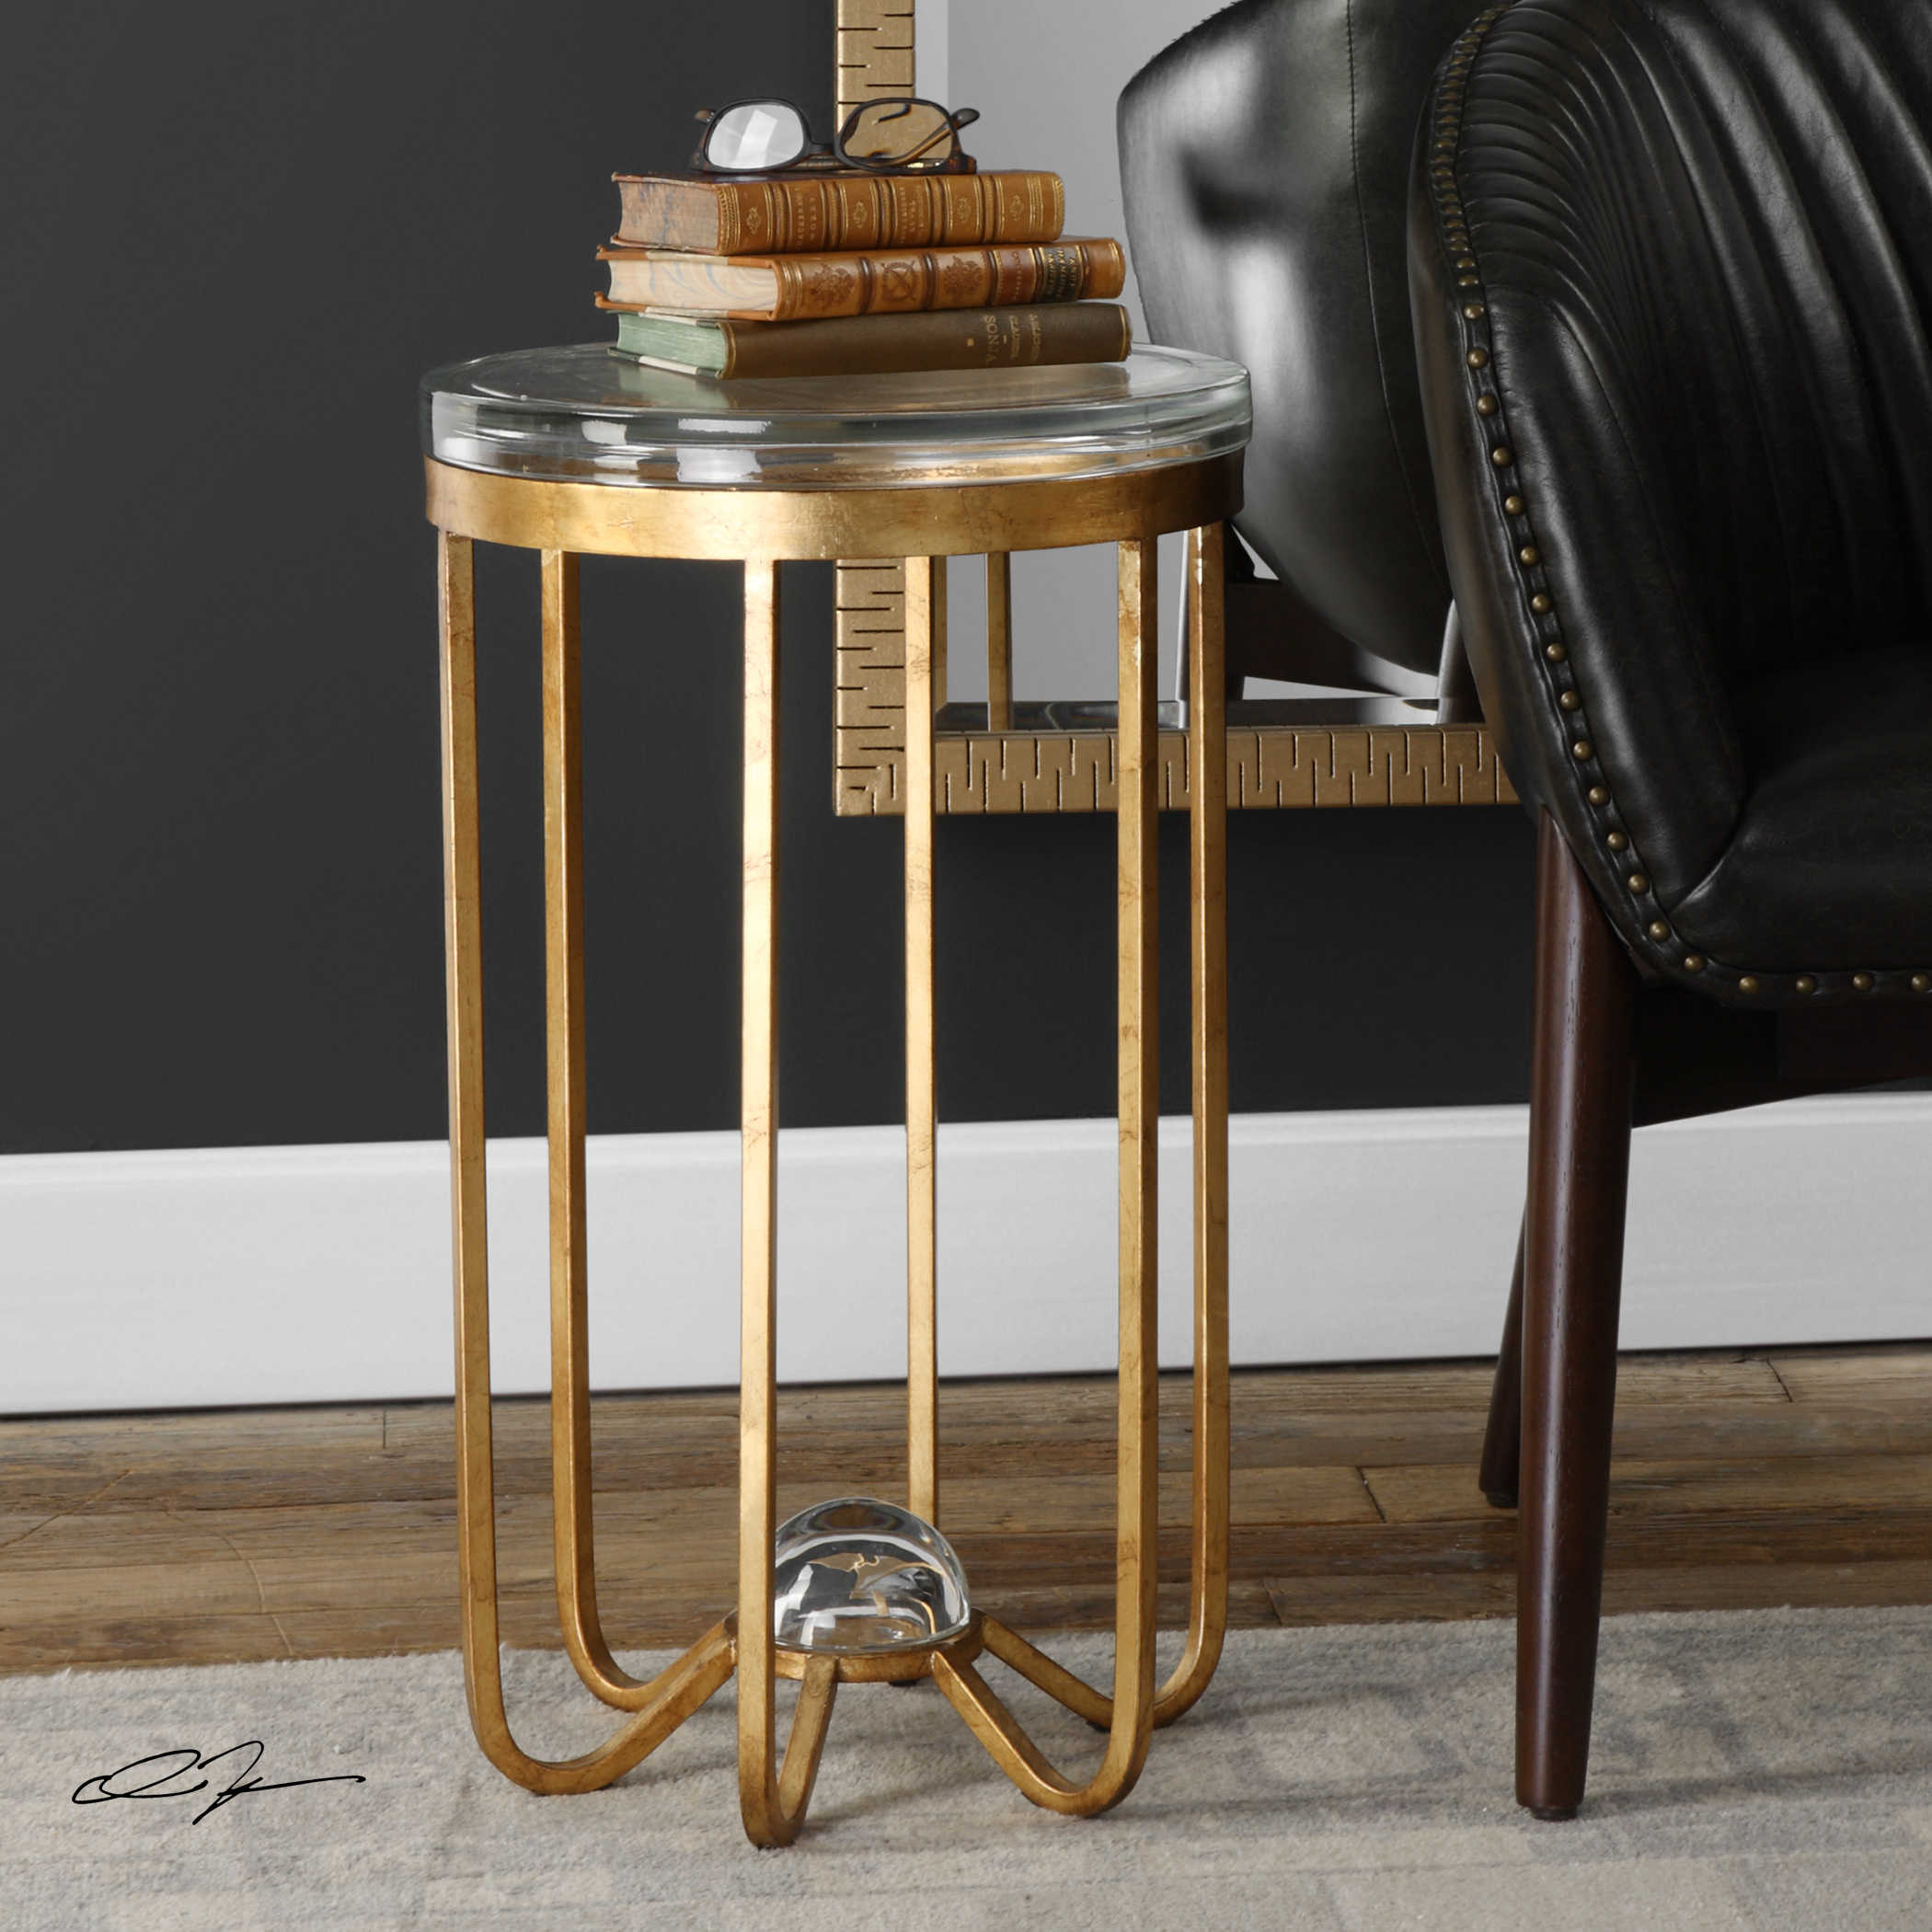 uttermost allura gold accent table round plastic tablecloths with elastic entry for small spaces bedroom night stands oak bar drum throne antique pedestal front porch bench silver